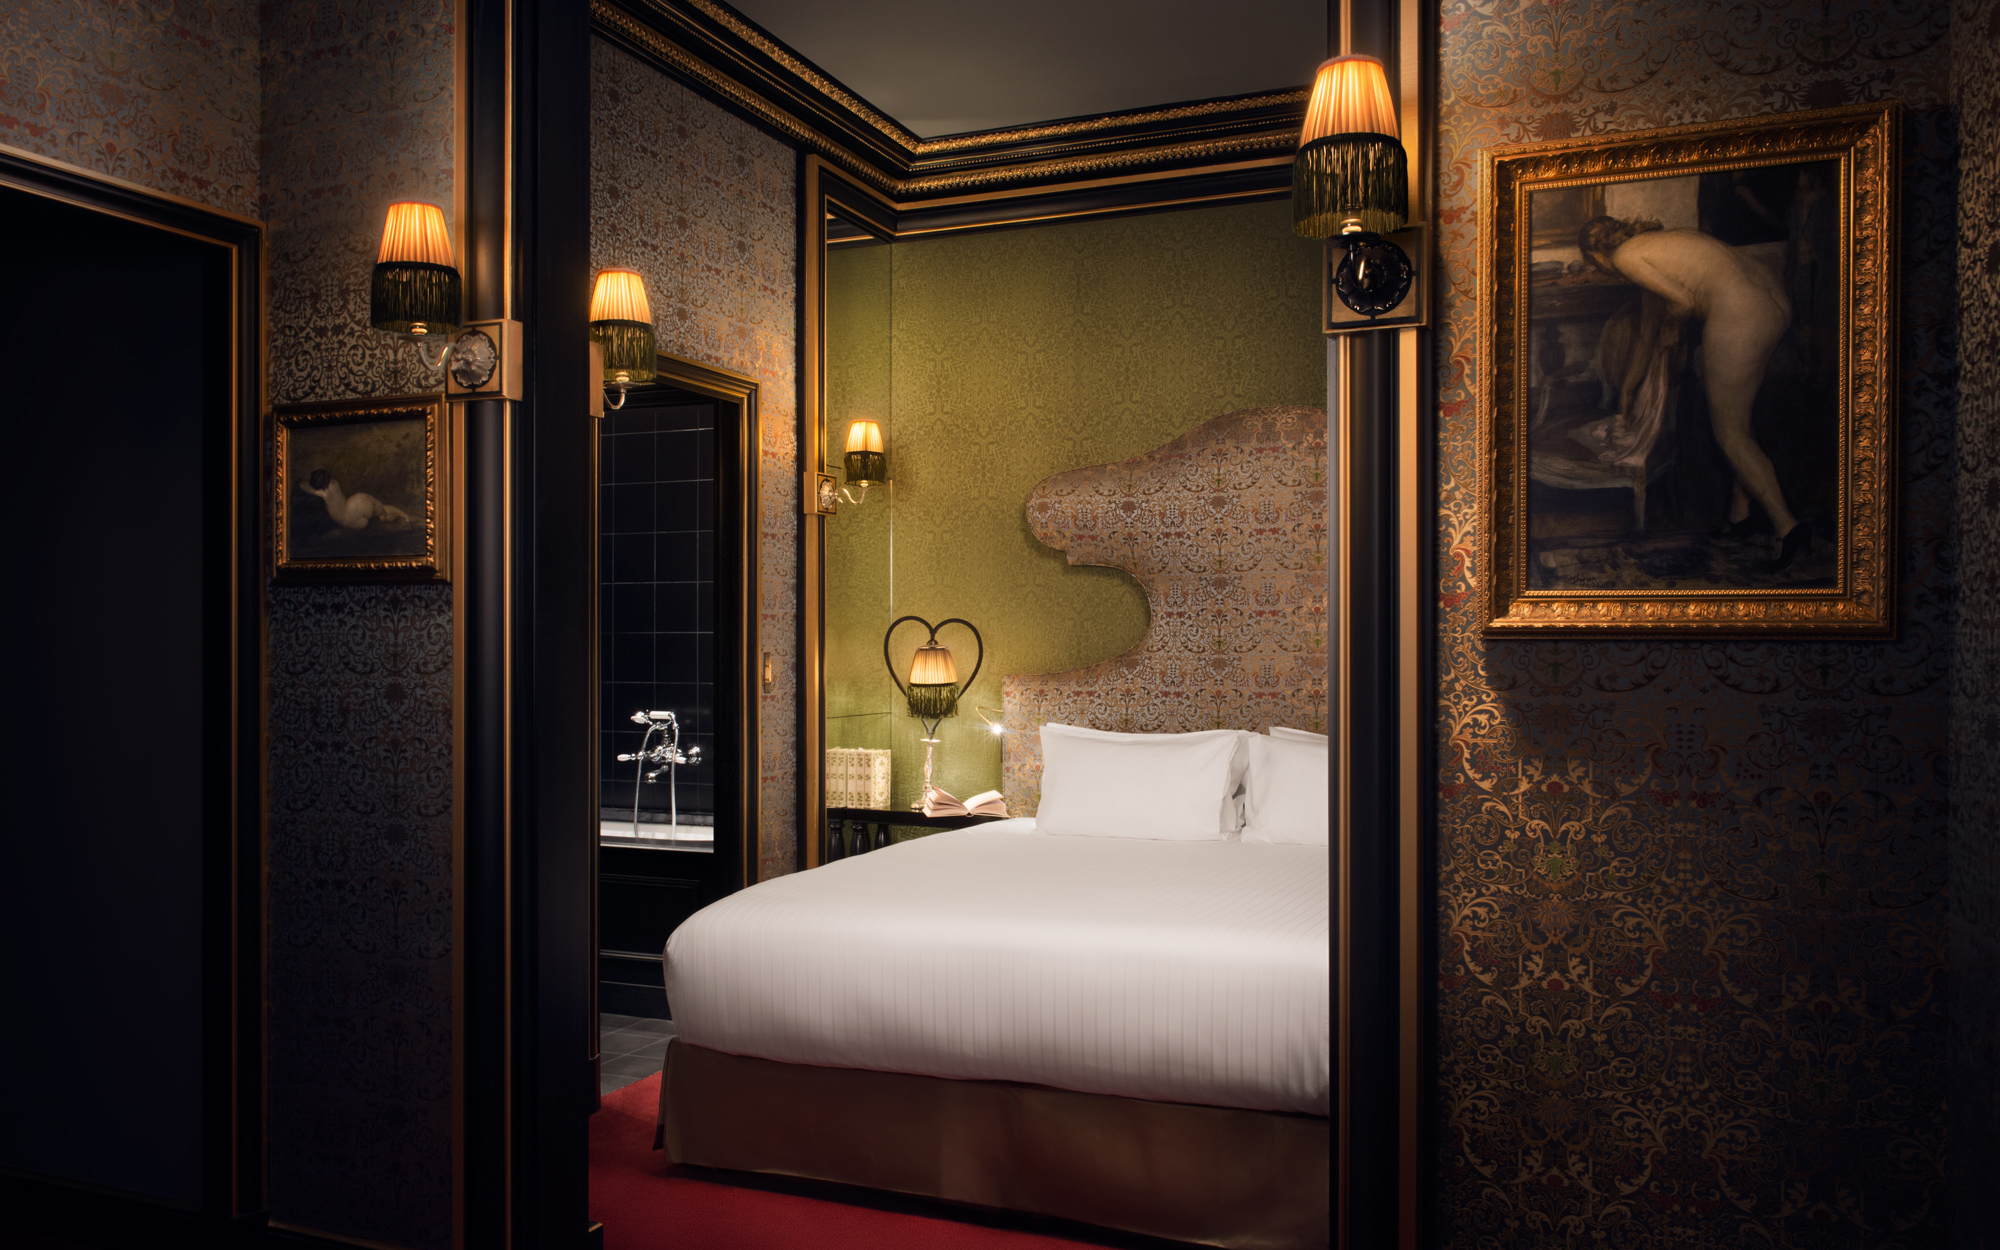 New to Paris: a Vampy Hotel With Design Steeped in Sex: Junior Suite